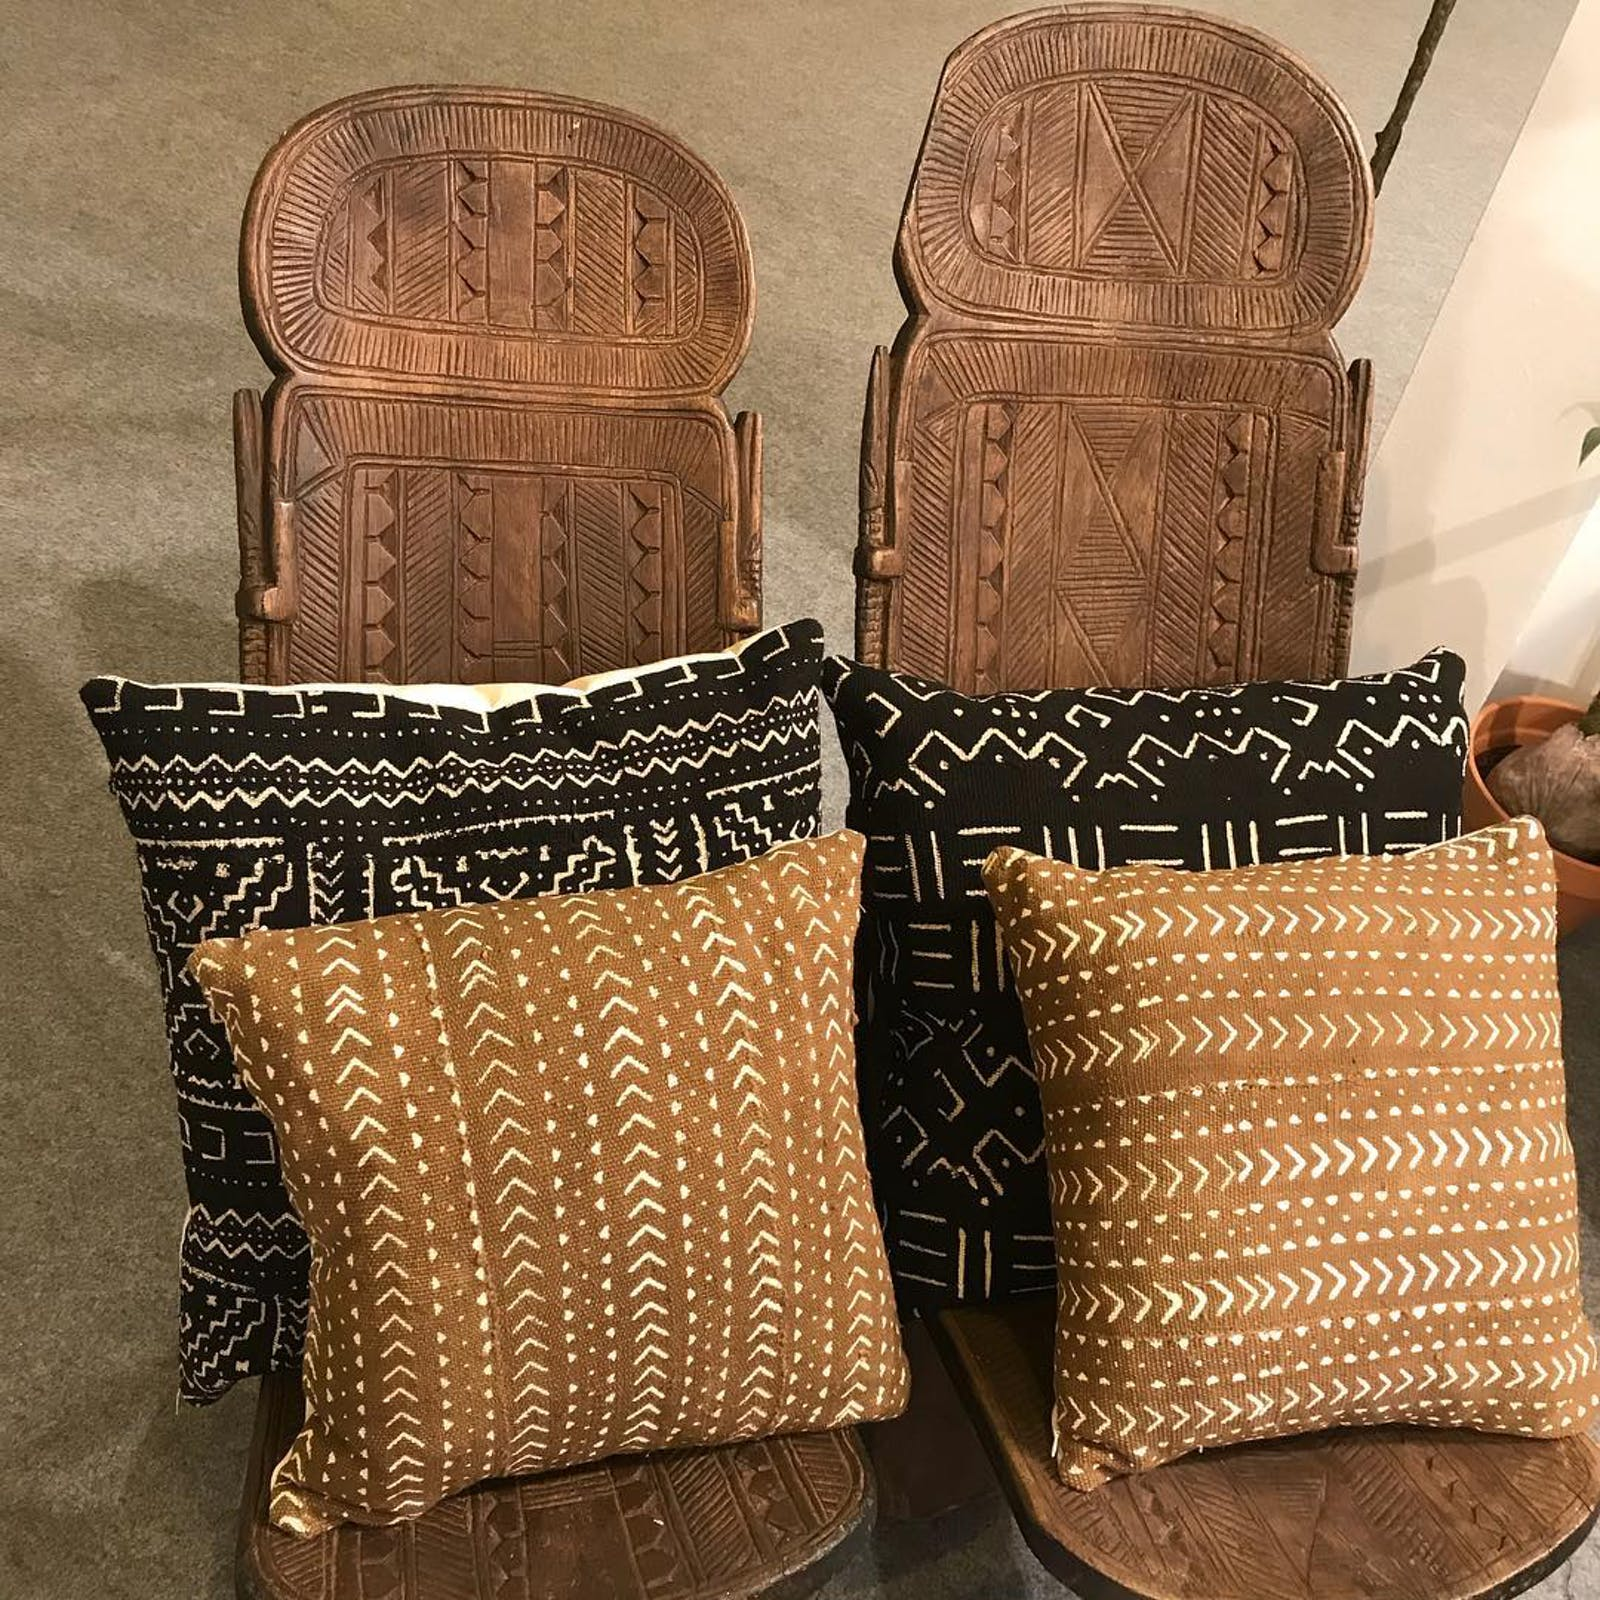 Mud cloth cushions on African style chair